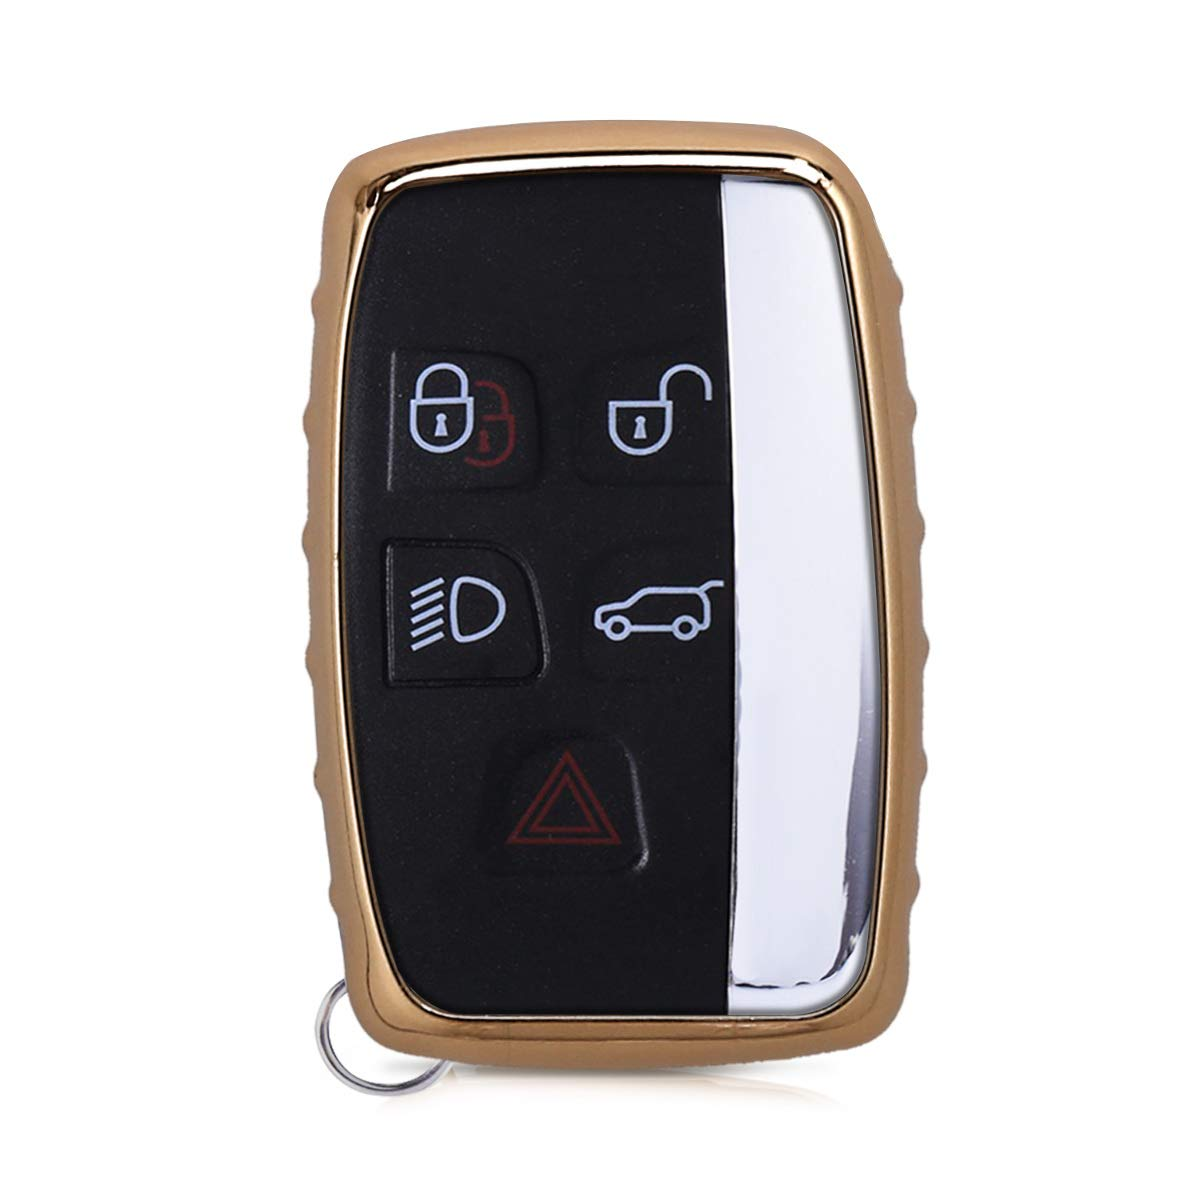 kwmobile Car Key Cover for Land Rover Jaguar Rose Gold High Gloss Soft TPU Silicone Protective Key Fob Cover for Land Rover Jaguar 5-Button Remote Car Key